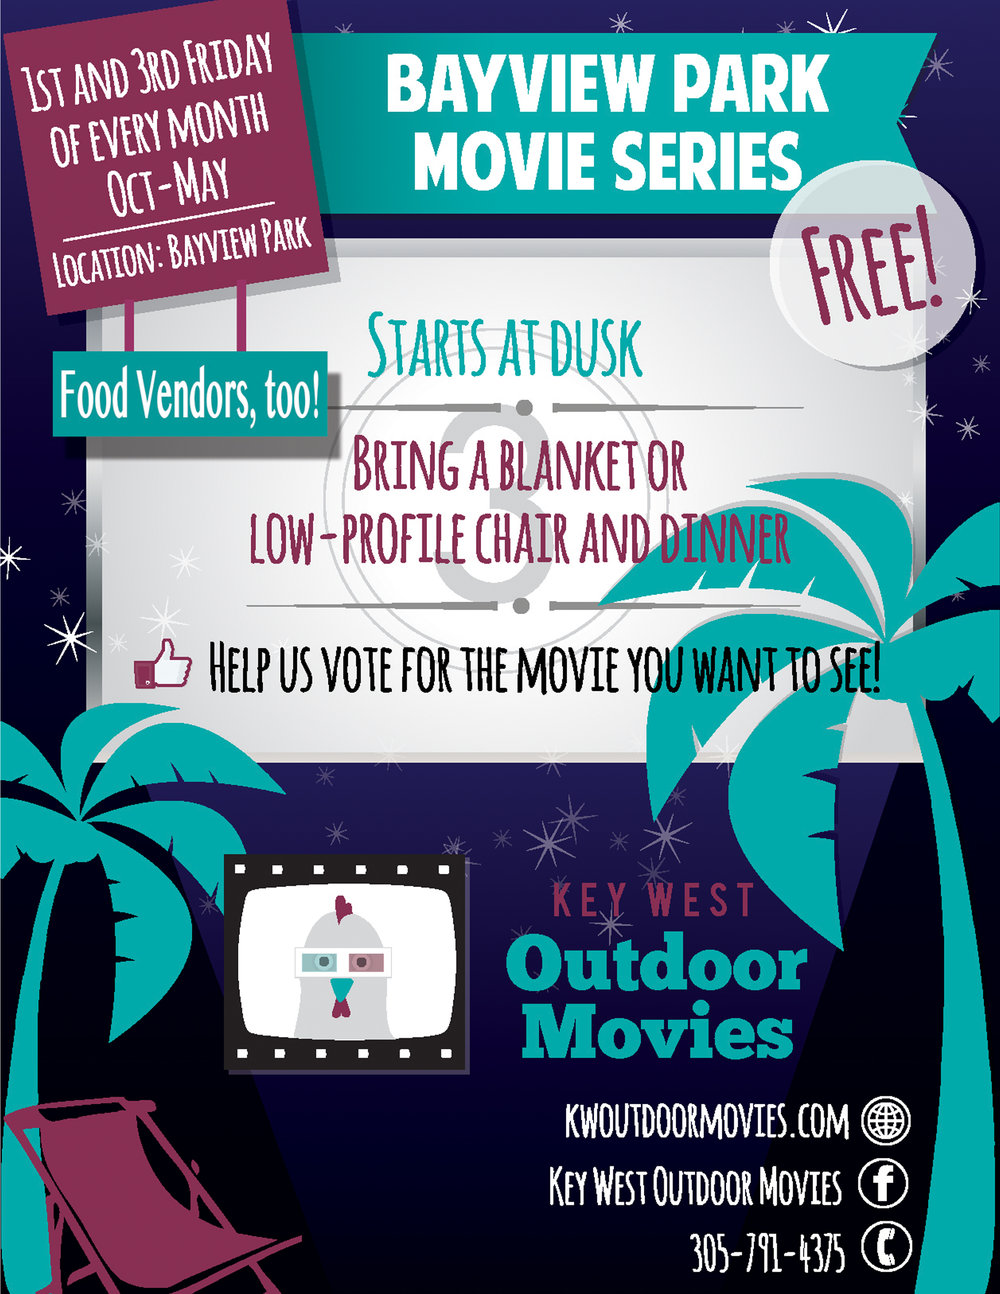 bayview park movie series key west outdoor movies